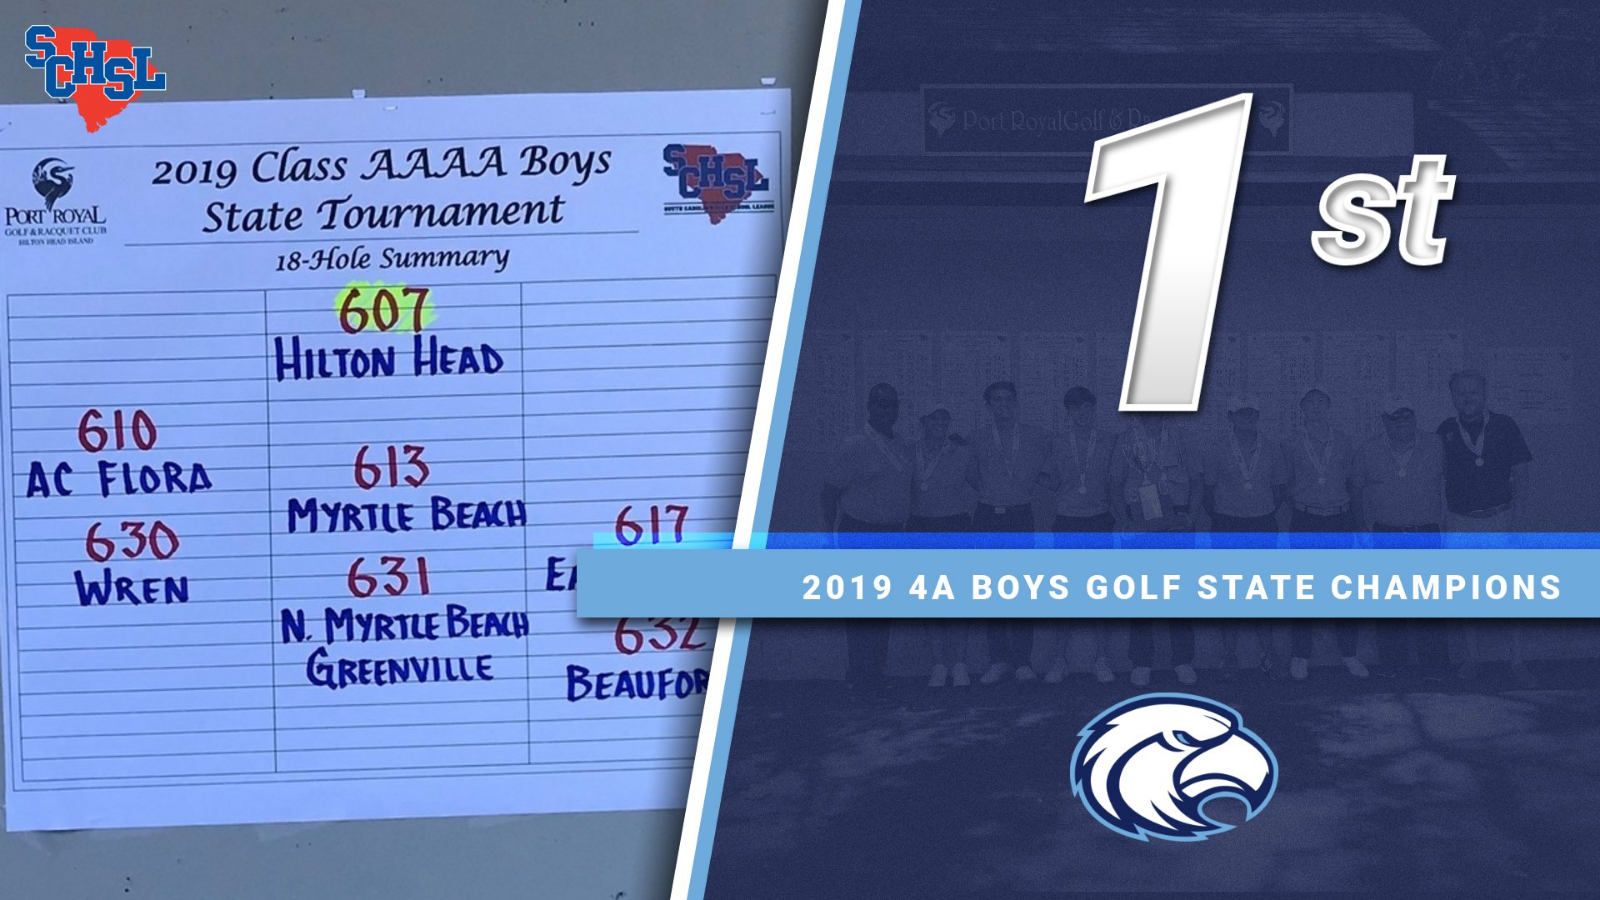 Boys Golf 4A State Champions